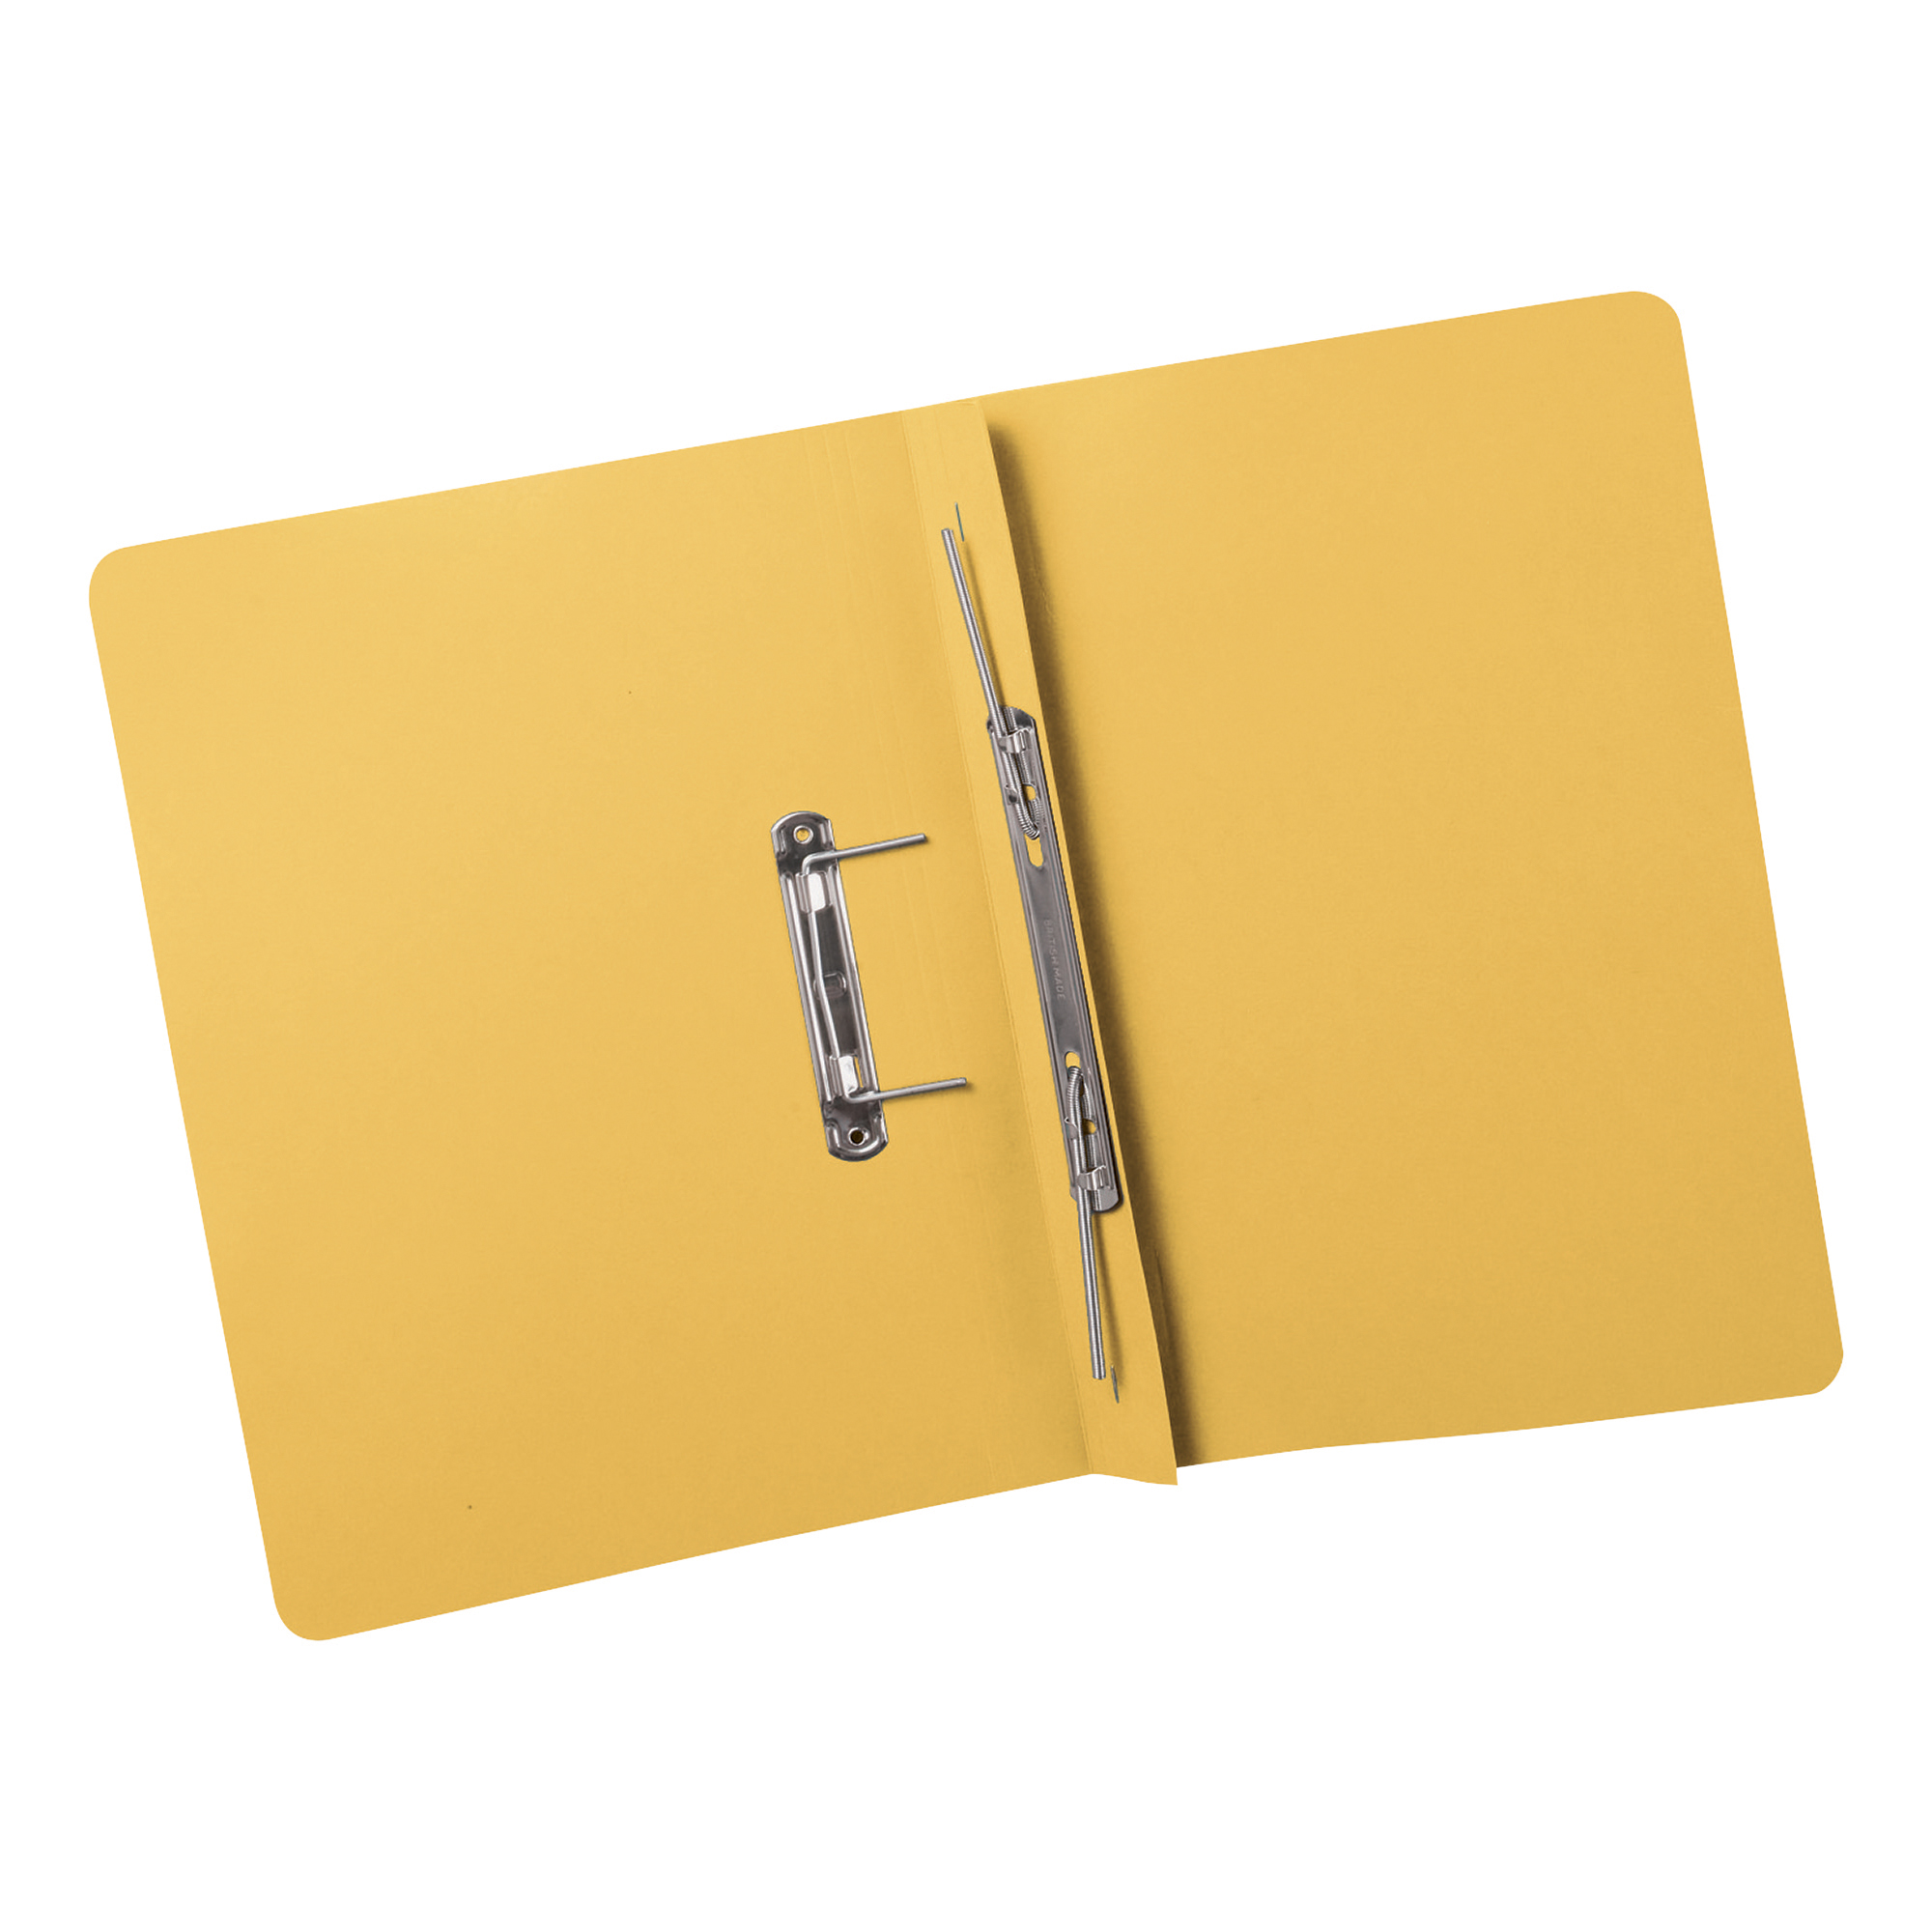 Invo Transfer Spring Files Heavyweight 380gsm Capacity 38mm Foolscap Yellow Pack 25